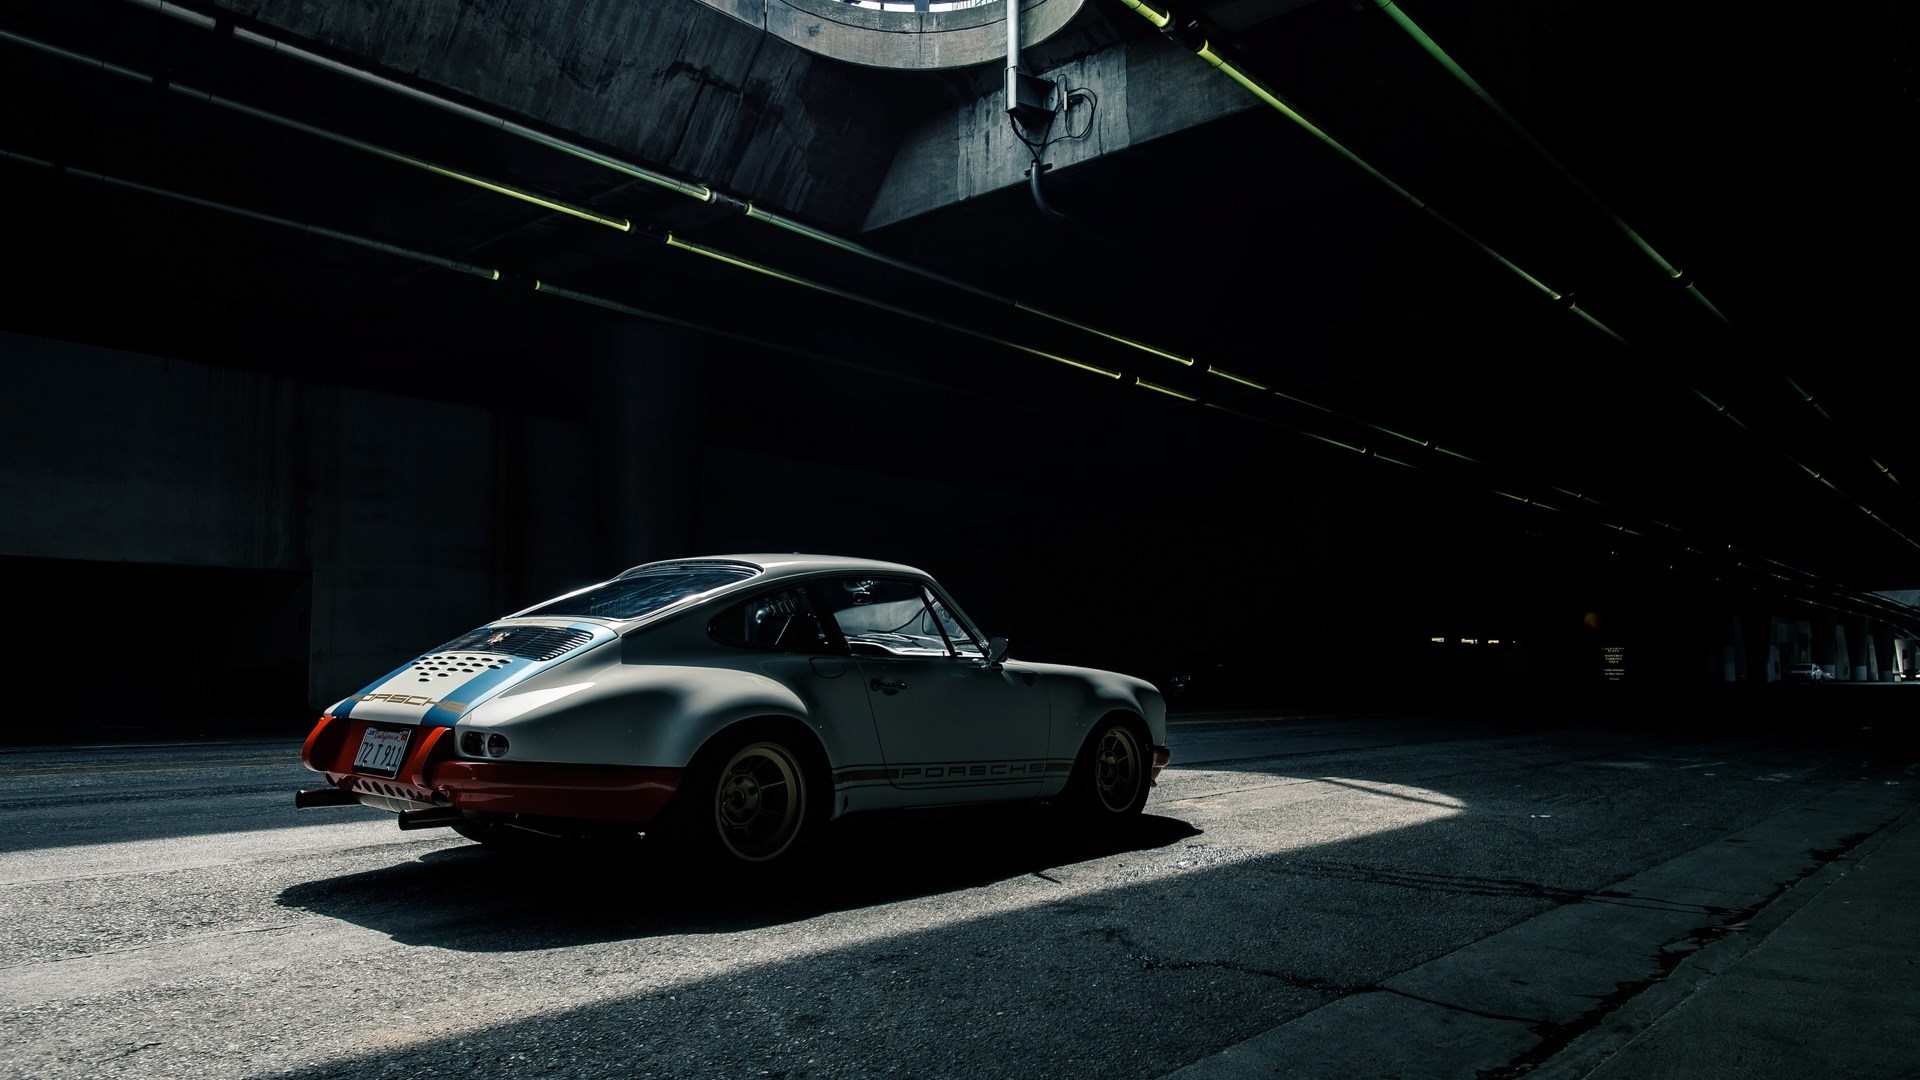 Patch of Light Tunnel Porsche 911 HD Wallpaper